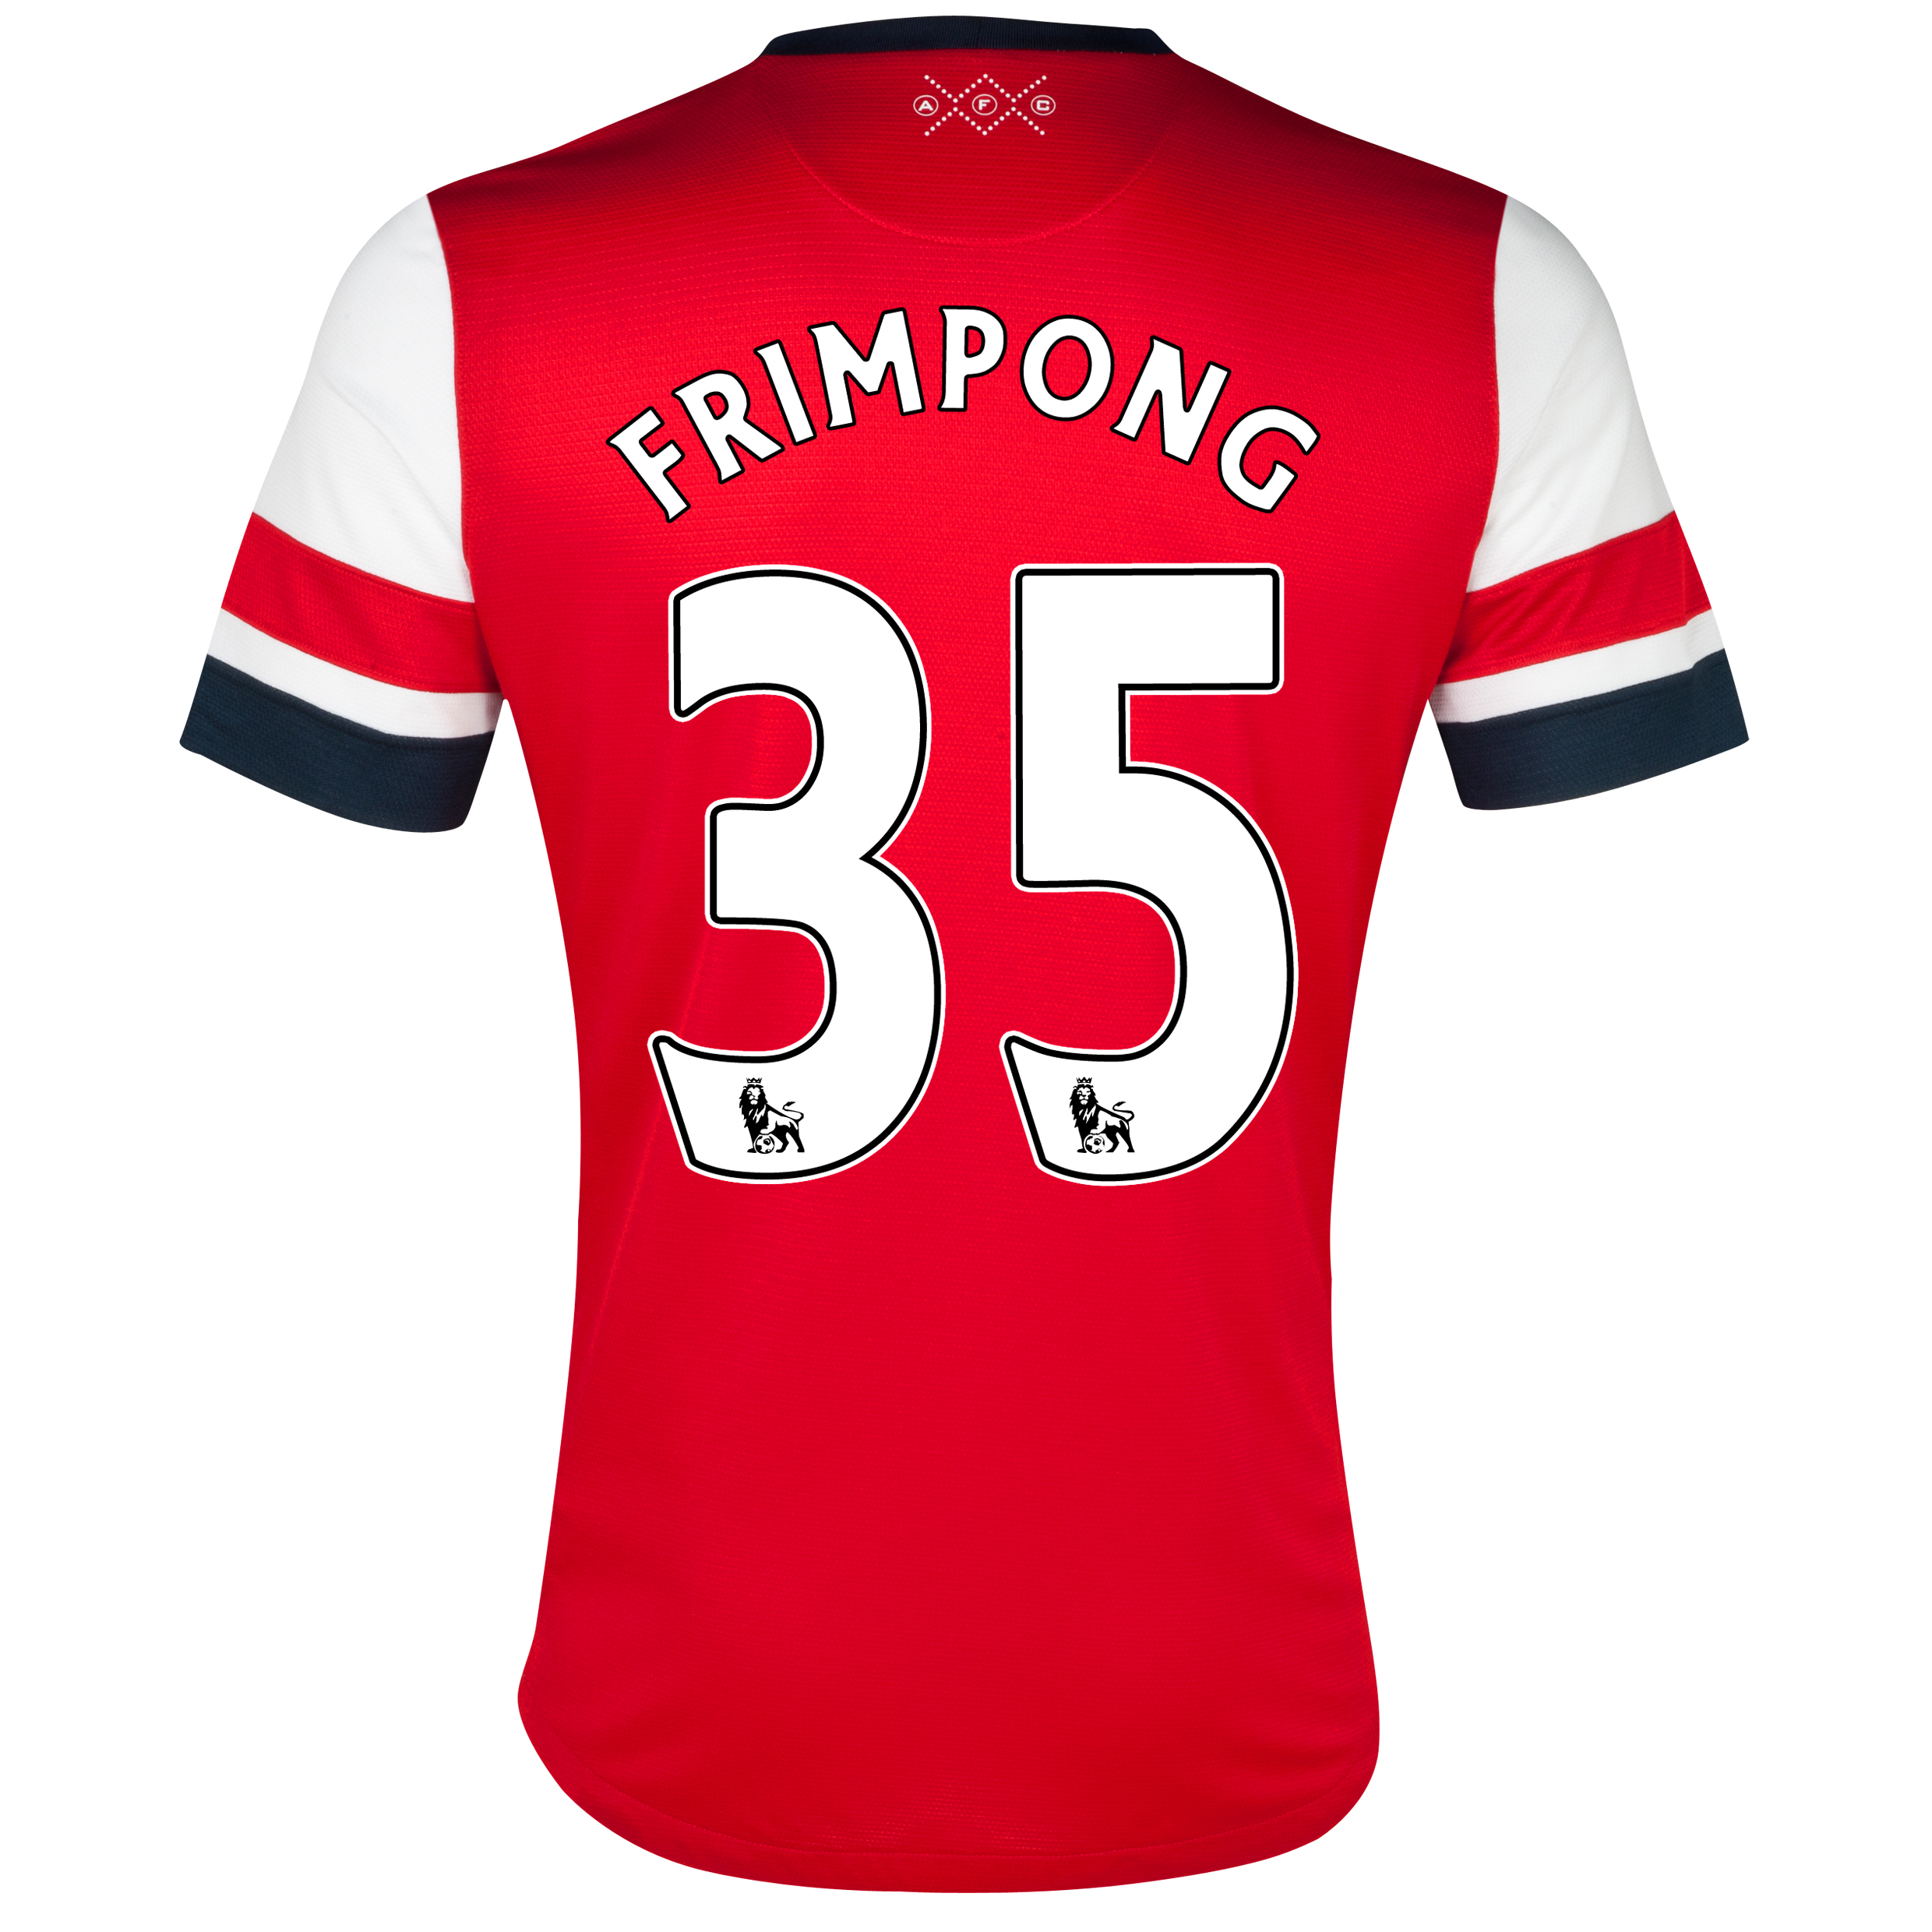 Arsenal  Home Shirt 2012/13 - Womens with Frimpong 35 printing